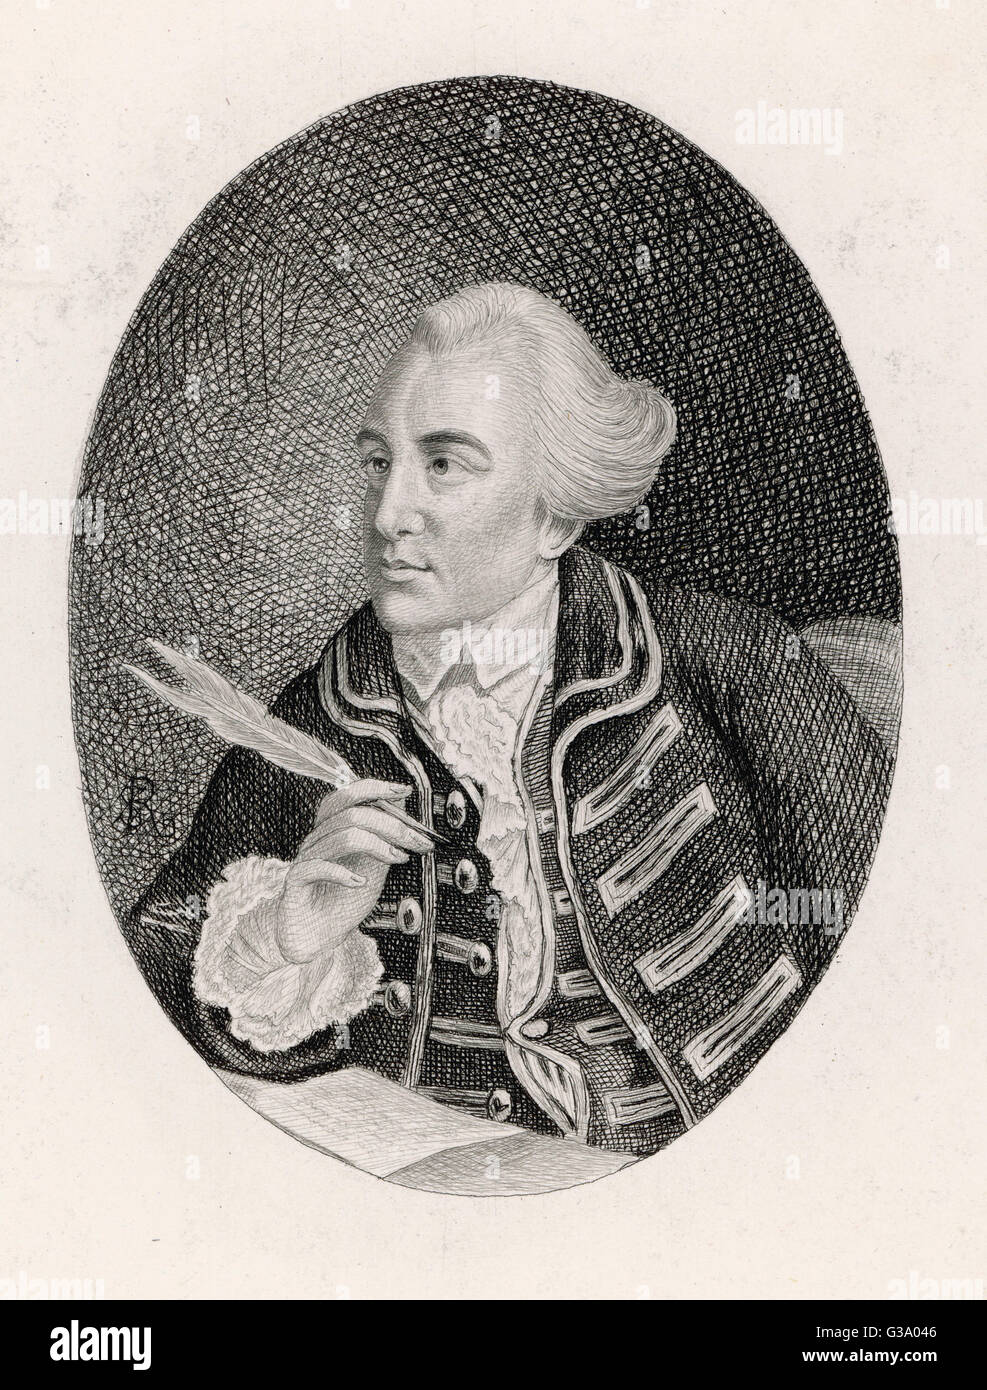 JOHN WILKES  English politician and reformer       Date: 1725 - 1797 - Stock Image